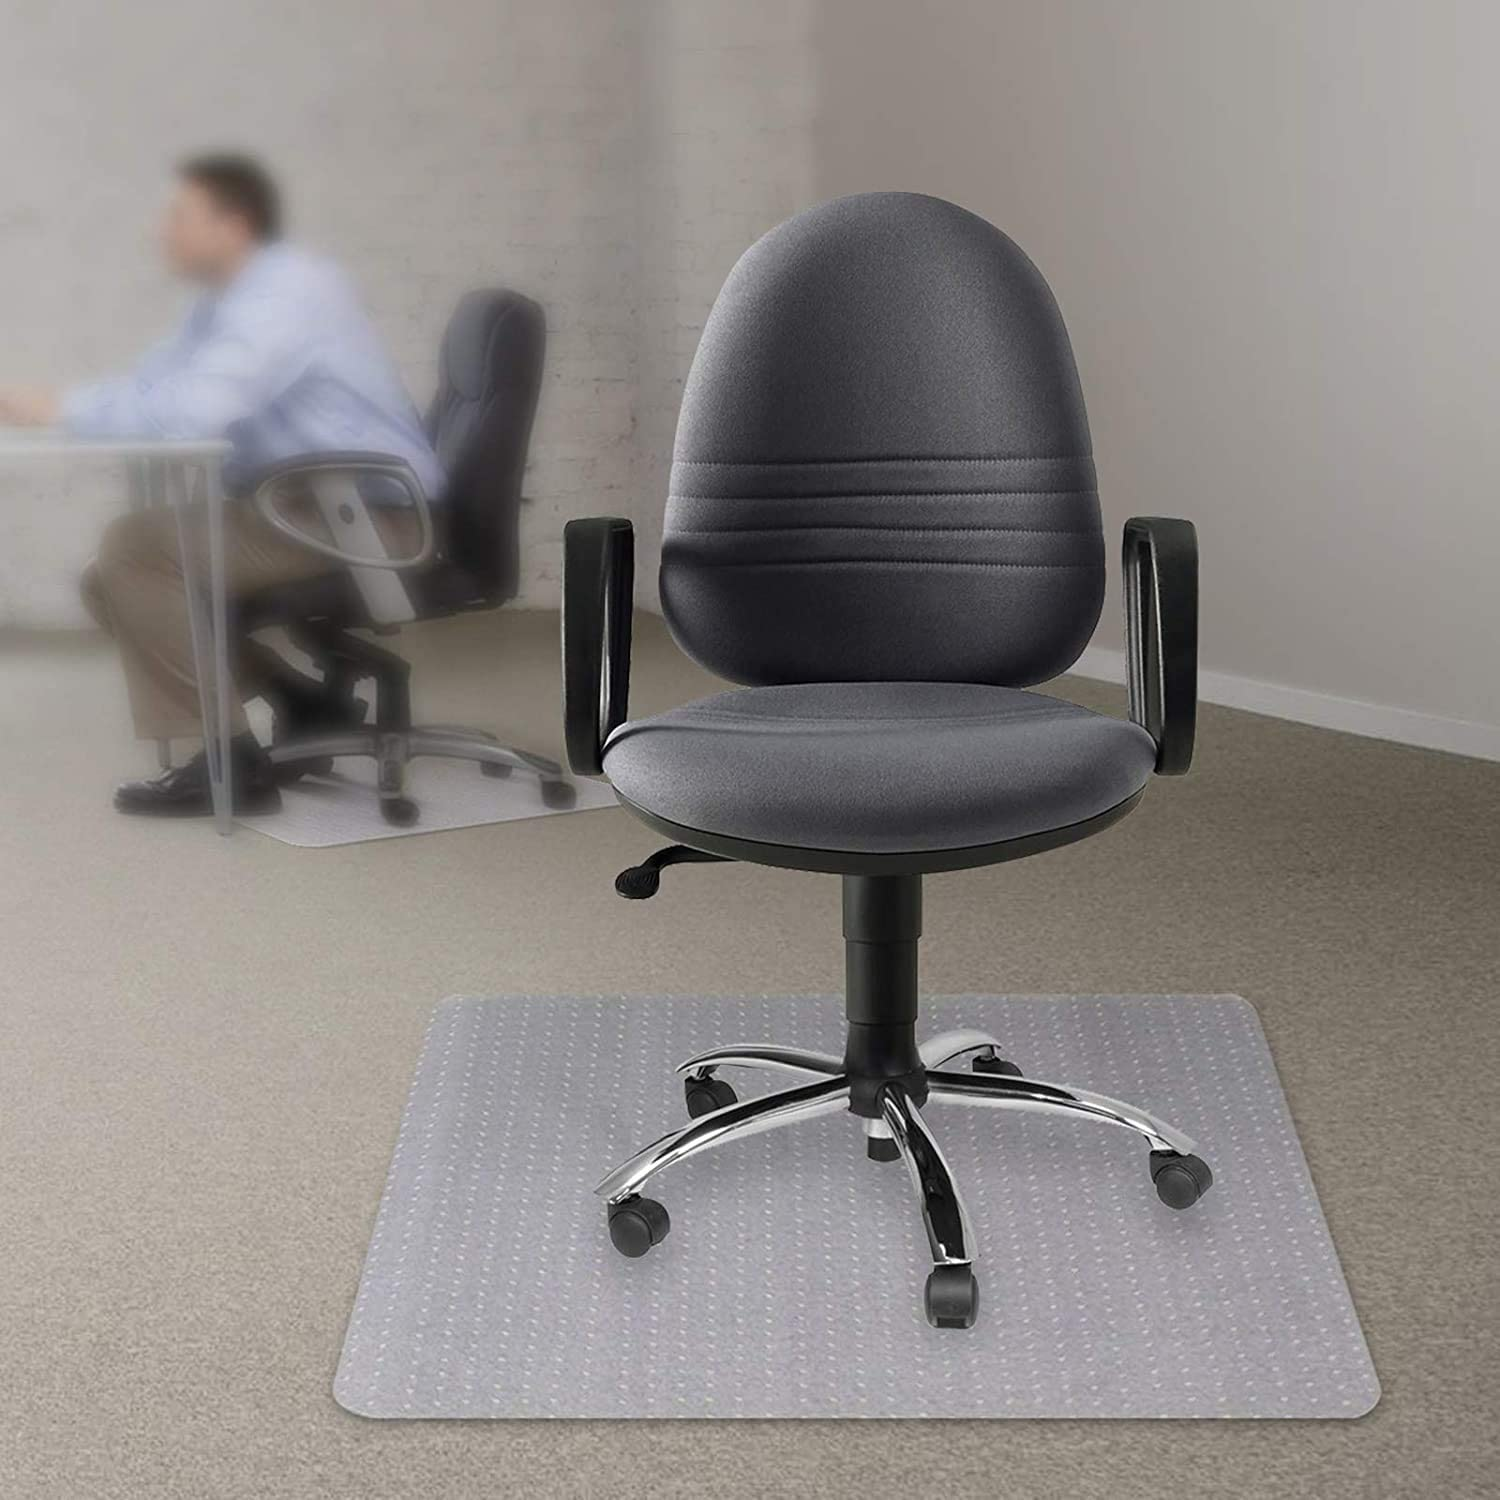 """Kuyal Office Chair Mat for Carpets,Transparent Thick and Sturdy Highly Premium Quality Floor Mats for Low, Standard and No Pile Carpeted Floors, with Studs (30"""" X 48"""" Rectangle): Kitchen & Dining"""